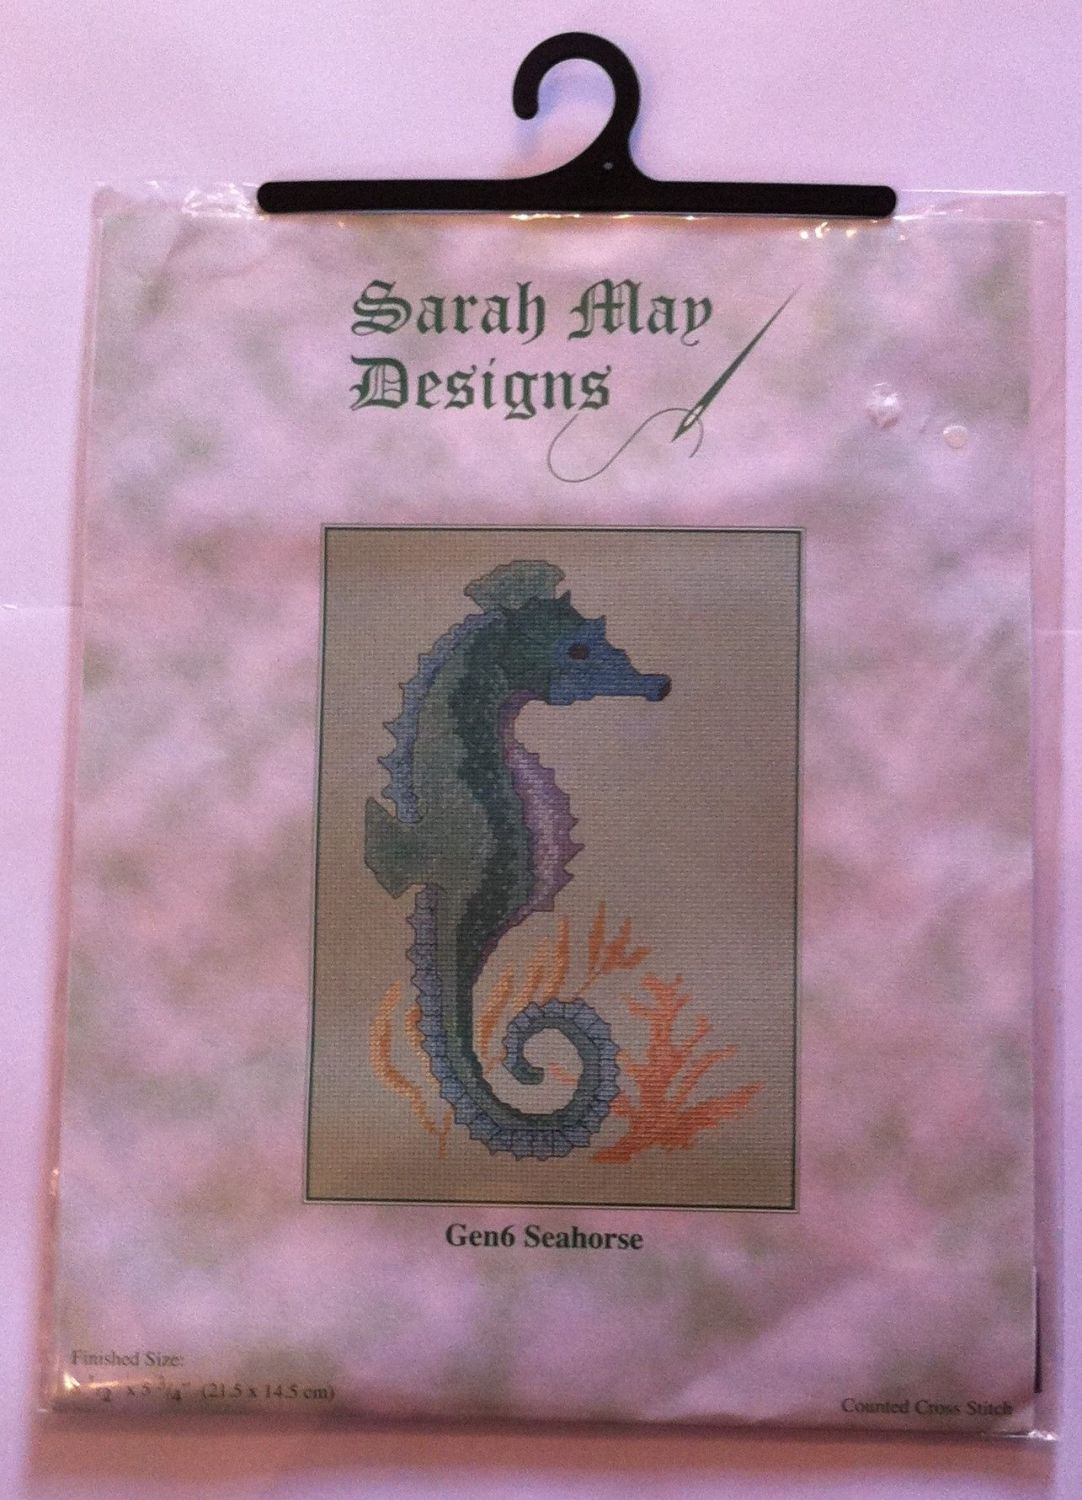 embroidery kit GEN6 Seahorse ref kit 1003